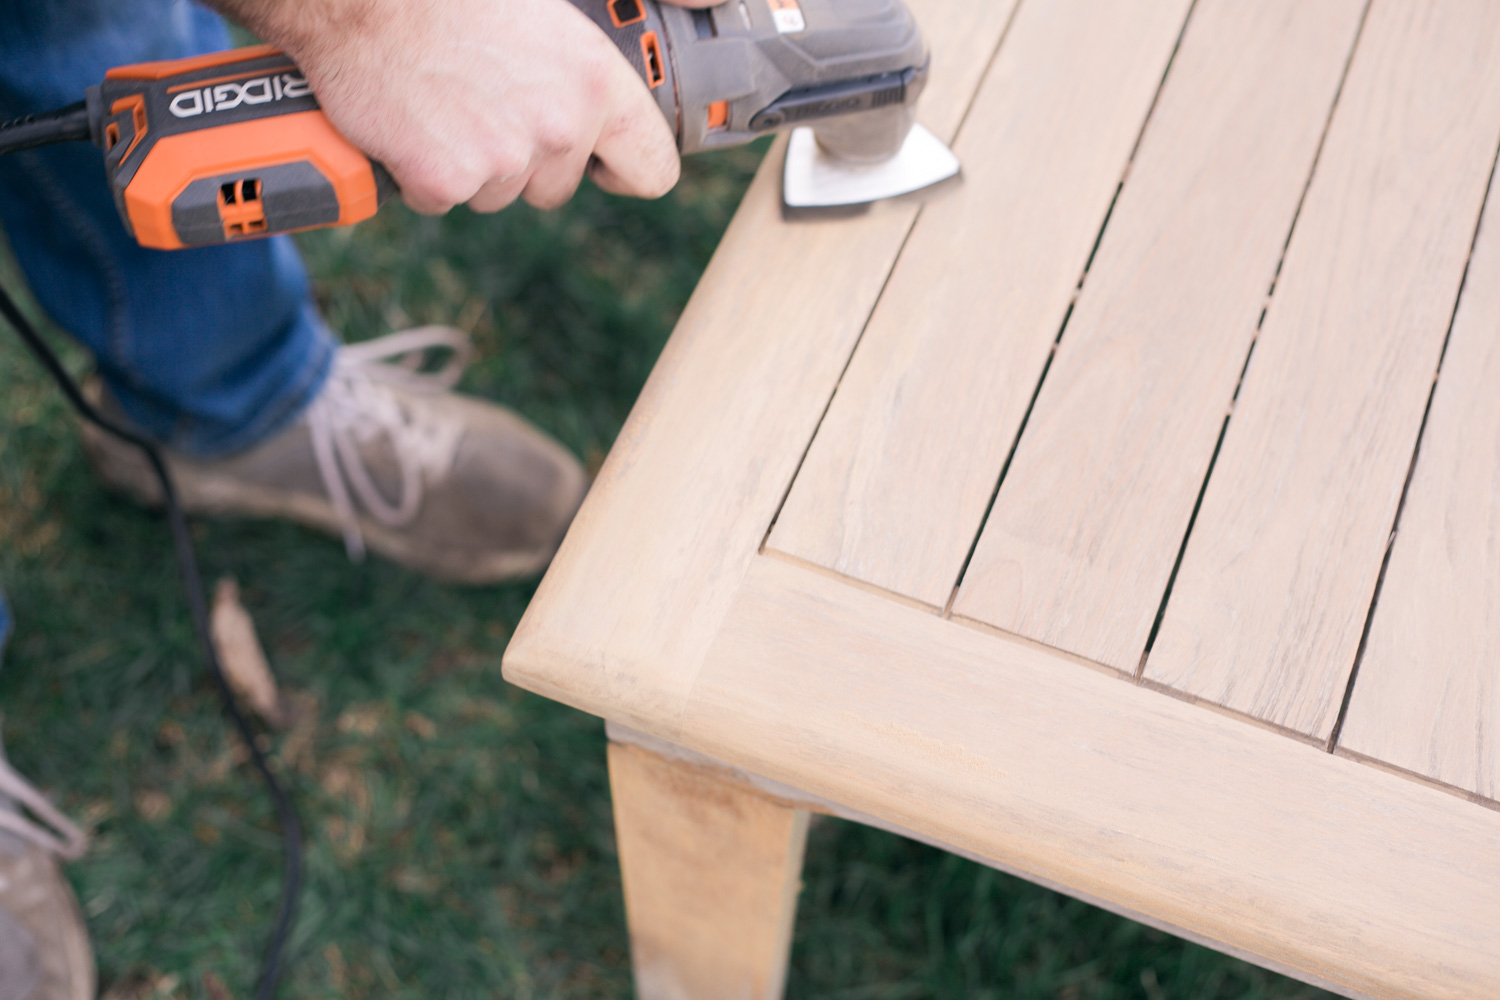 restoring teak furniture, teak patio set using oscillating tool